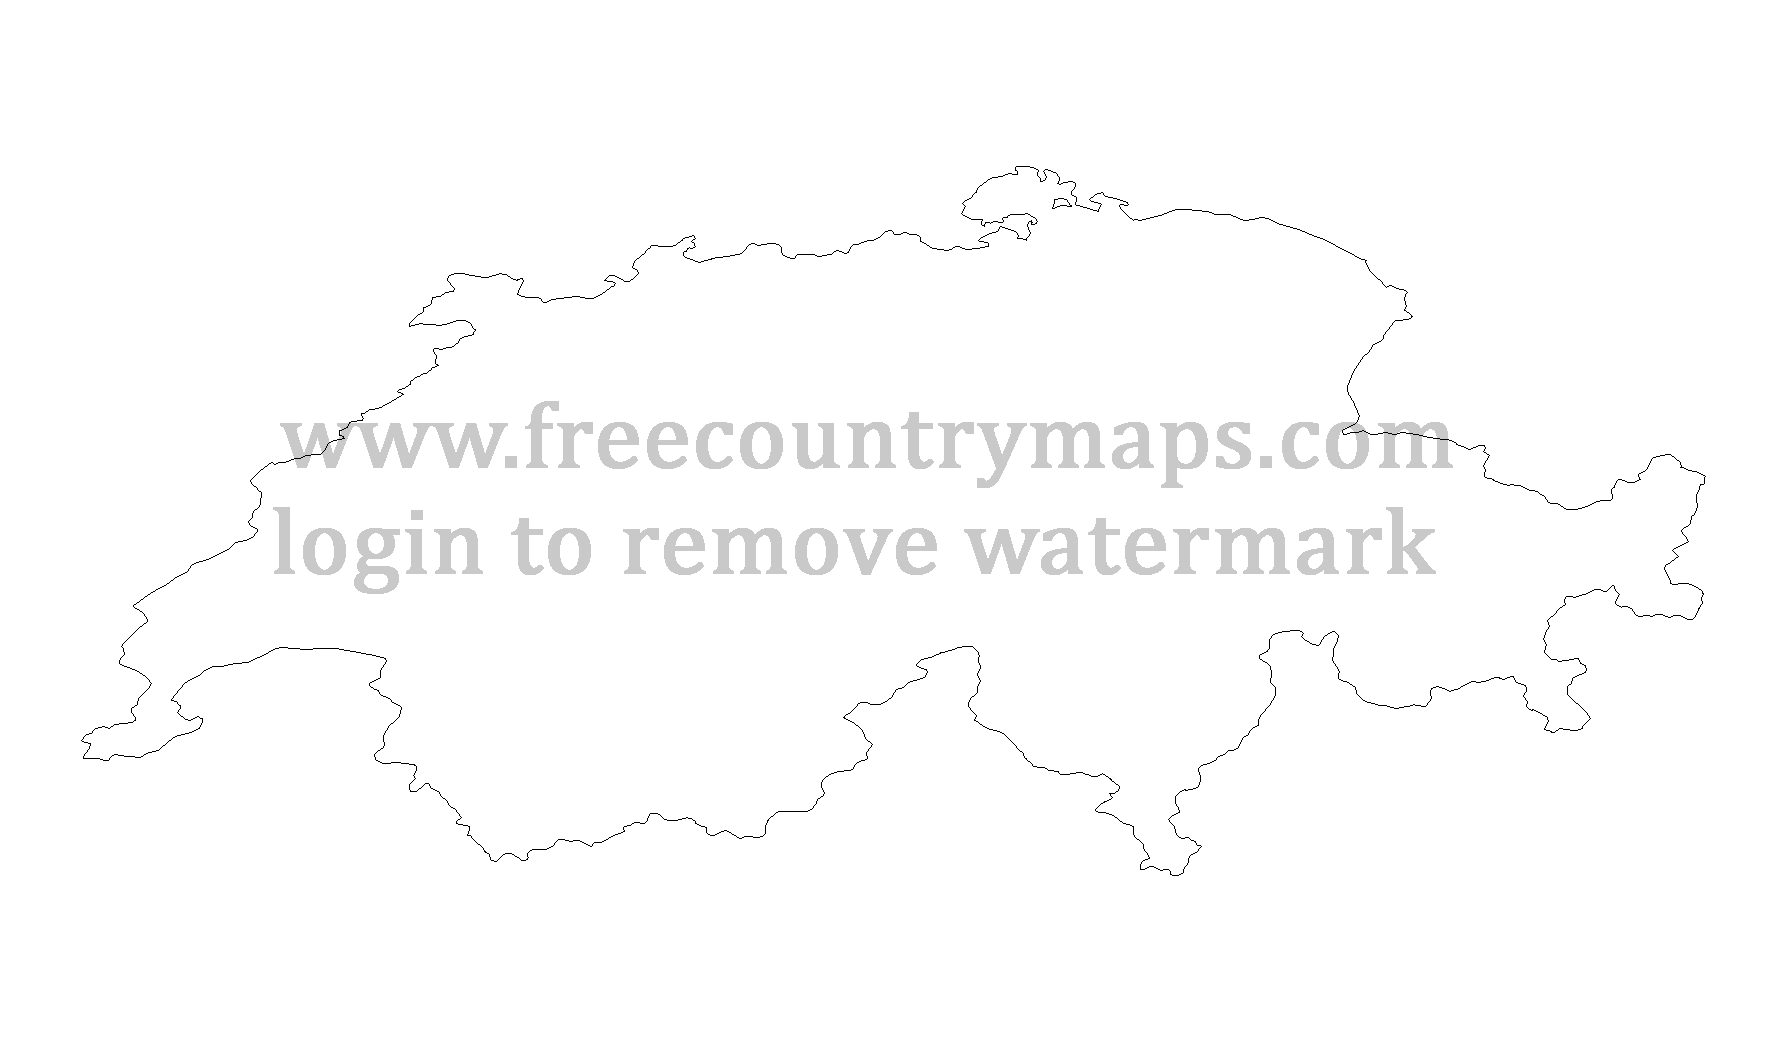 switzerland outline map switzerland free map free blank map free outline map map outline switzerland